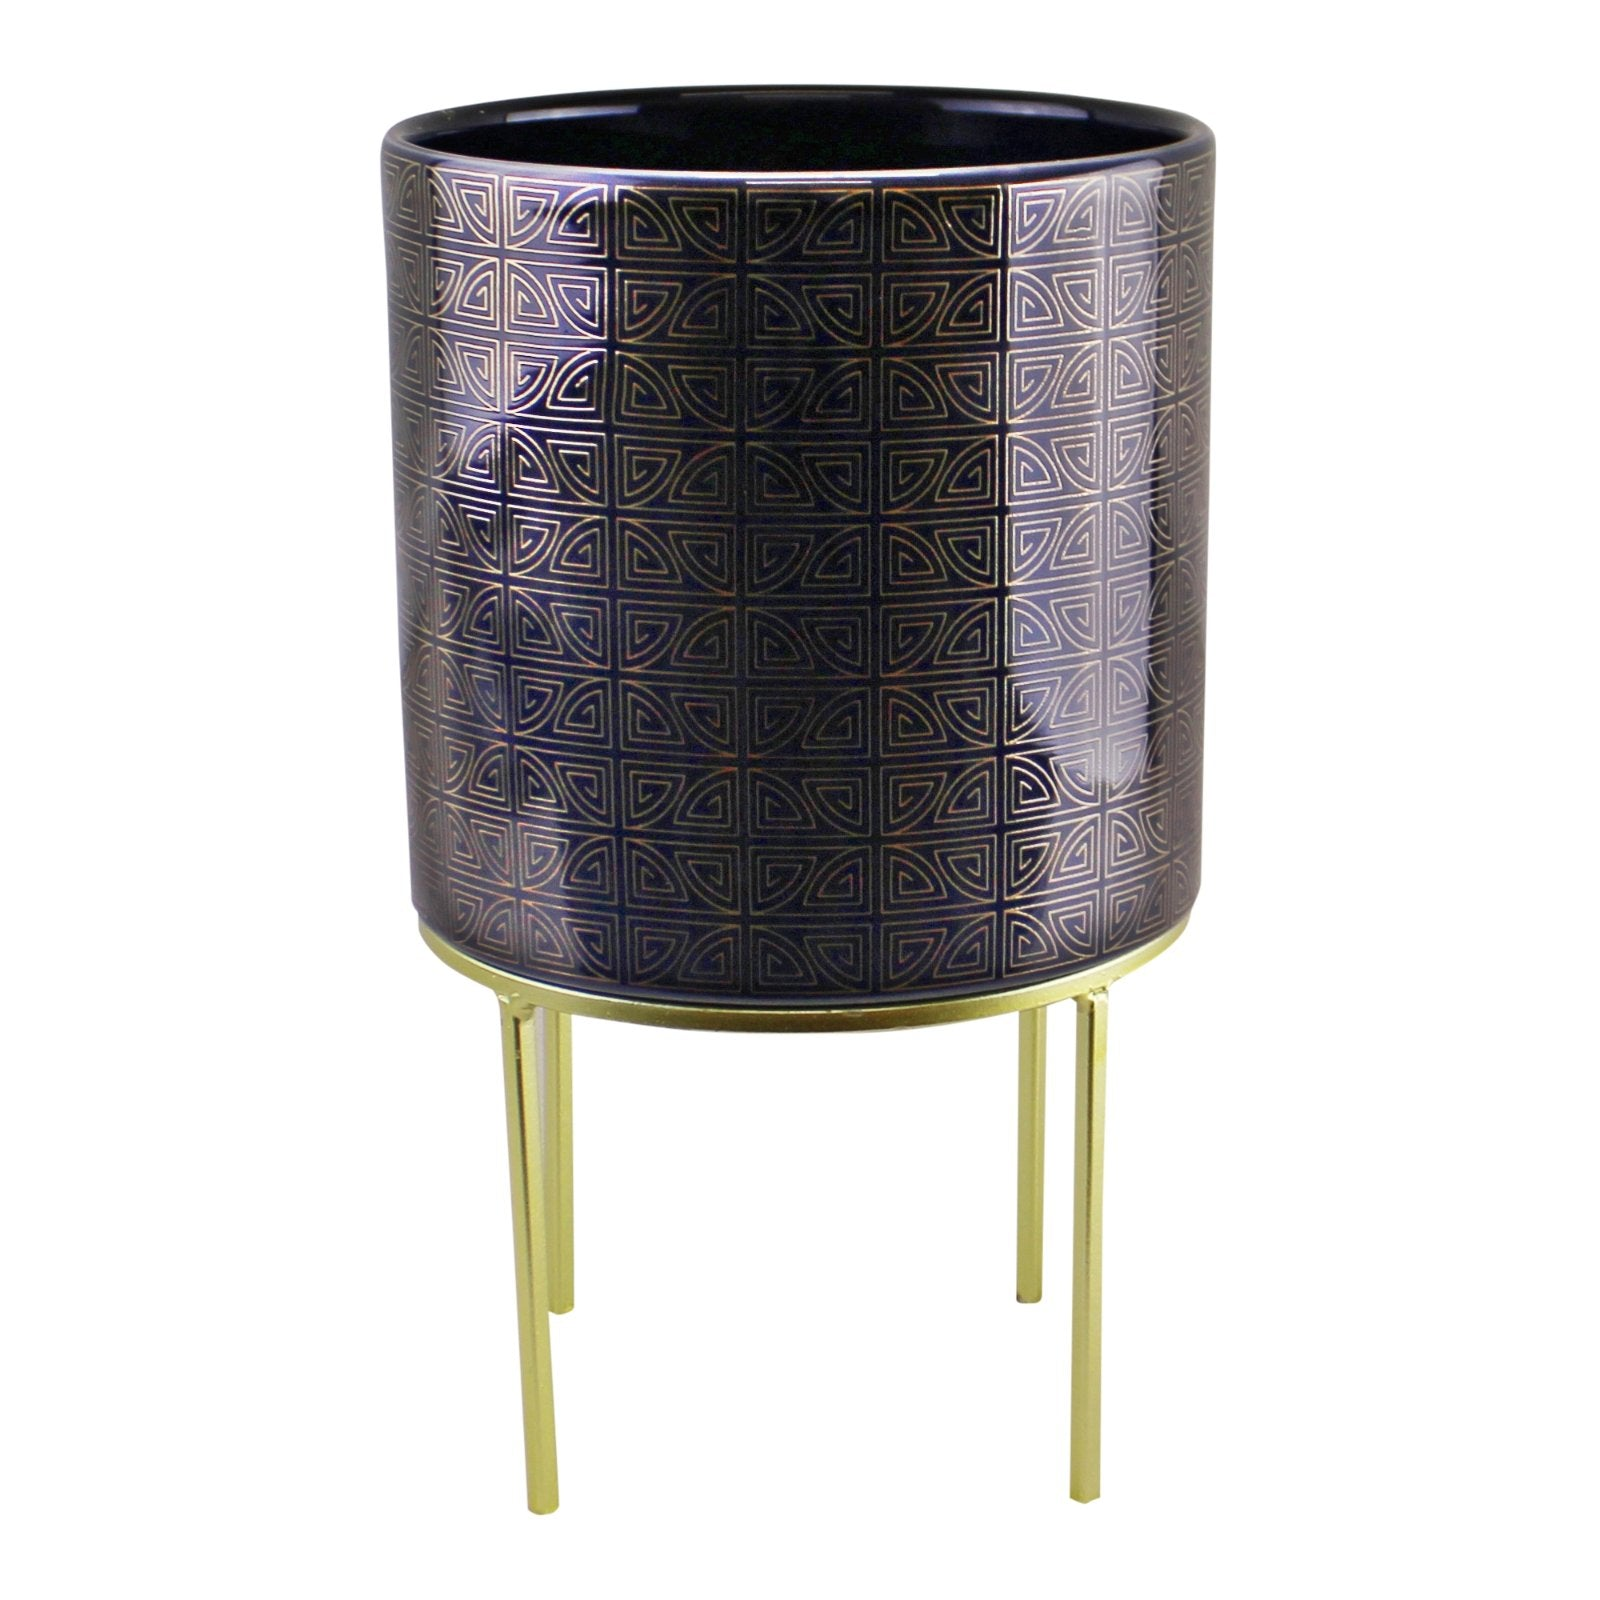 Midnight Blue & Gold Ceramic Planter On Stand, Round Geometric Design, Lawn & Garden by Low Cost Gifts